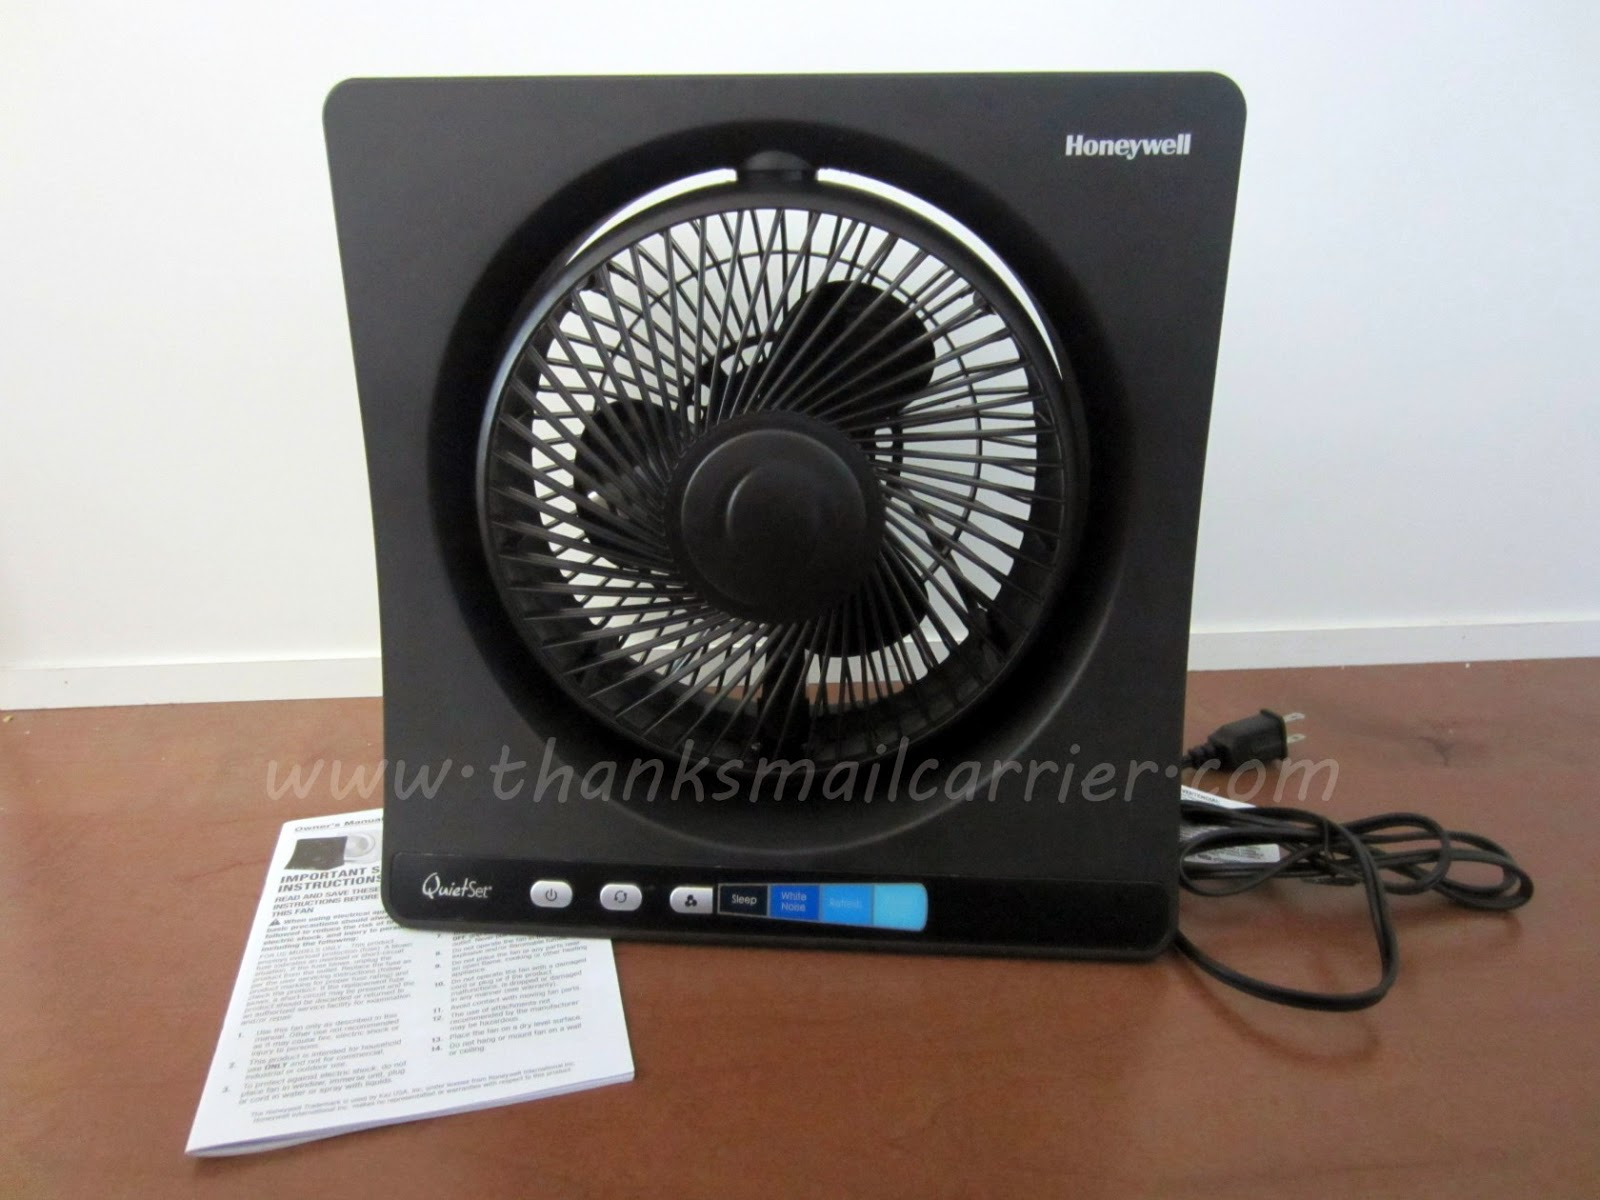 Honeywell Fan Earth Crust Diagram With Lithosphere Thanks Mail Carrier Cool Off The